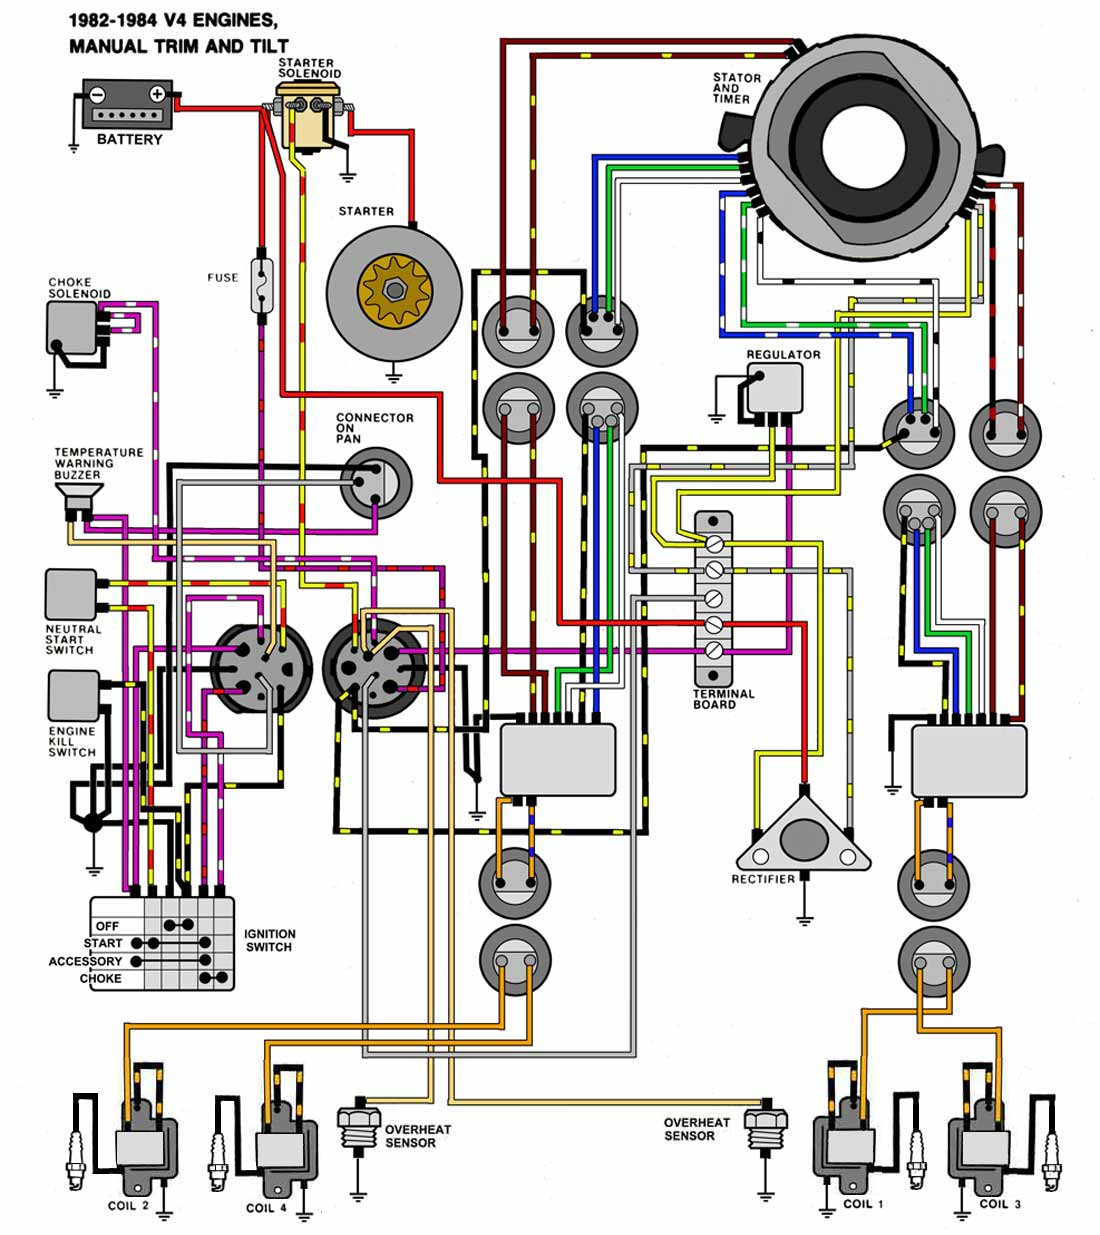 82_84_V4_NOTNT mastertech marine evinrude johnson outboard wiring diagrams evinrude ignition switch wiring diagram at bayanpartner.co